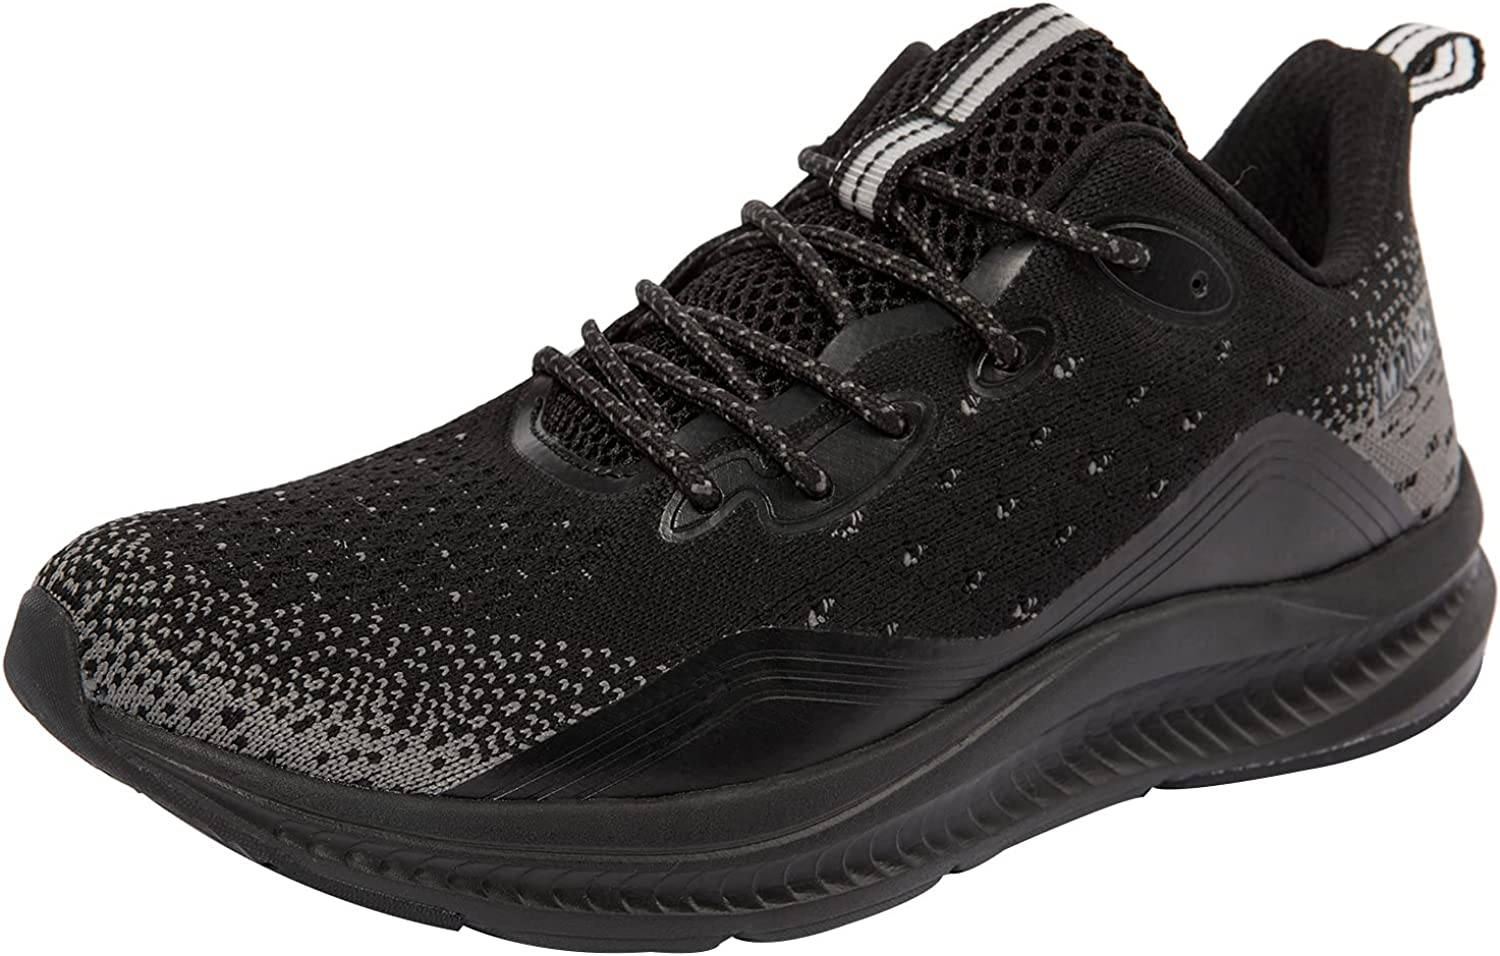 Fees free MAINCH Running Shoes for Men Non Athletic Fashion Sneakers Slip Purchase